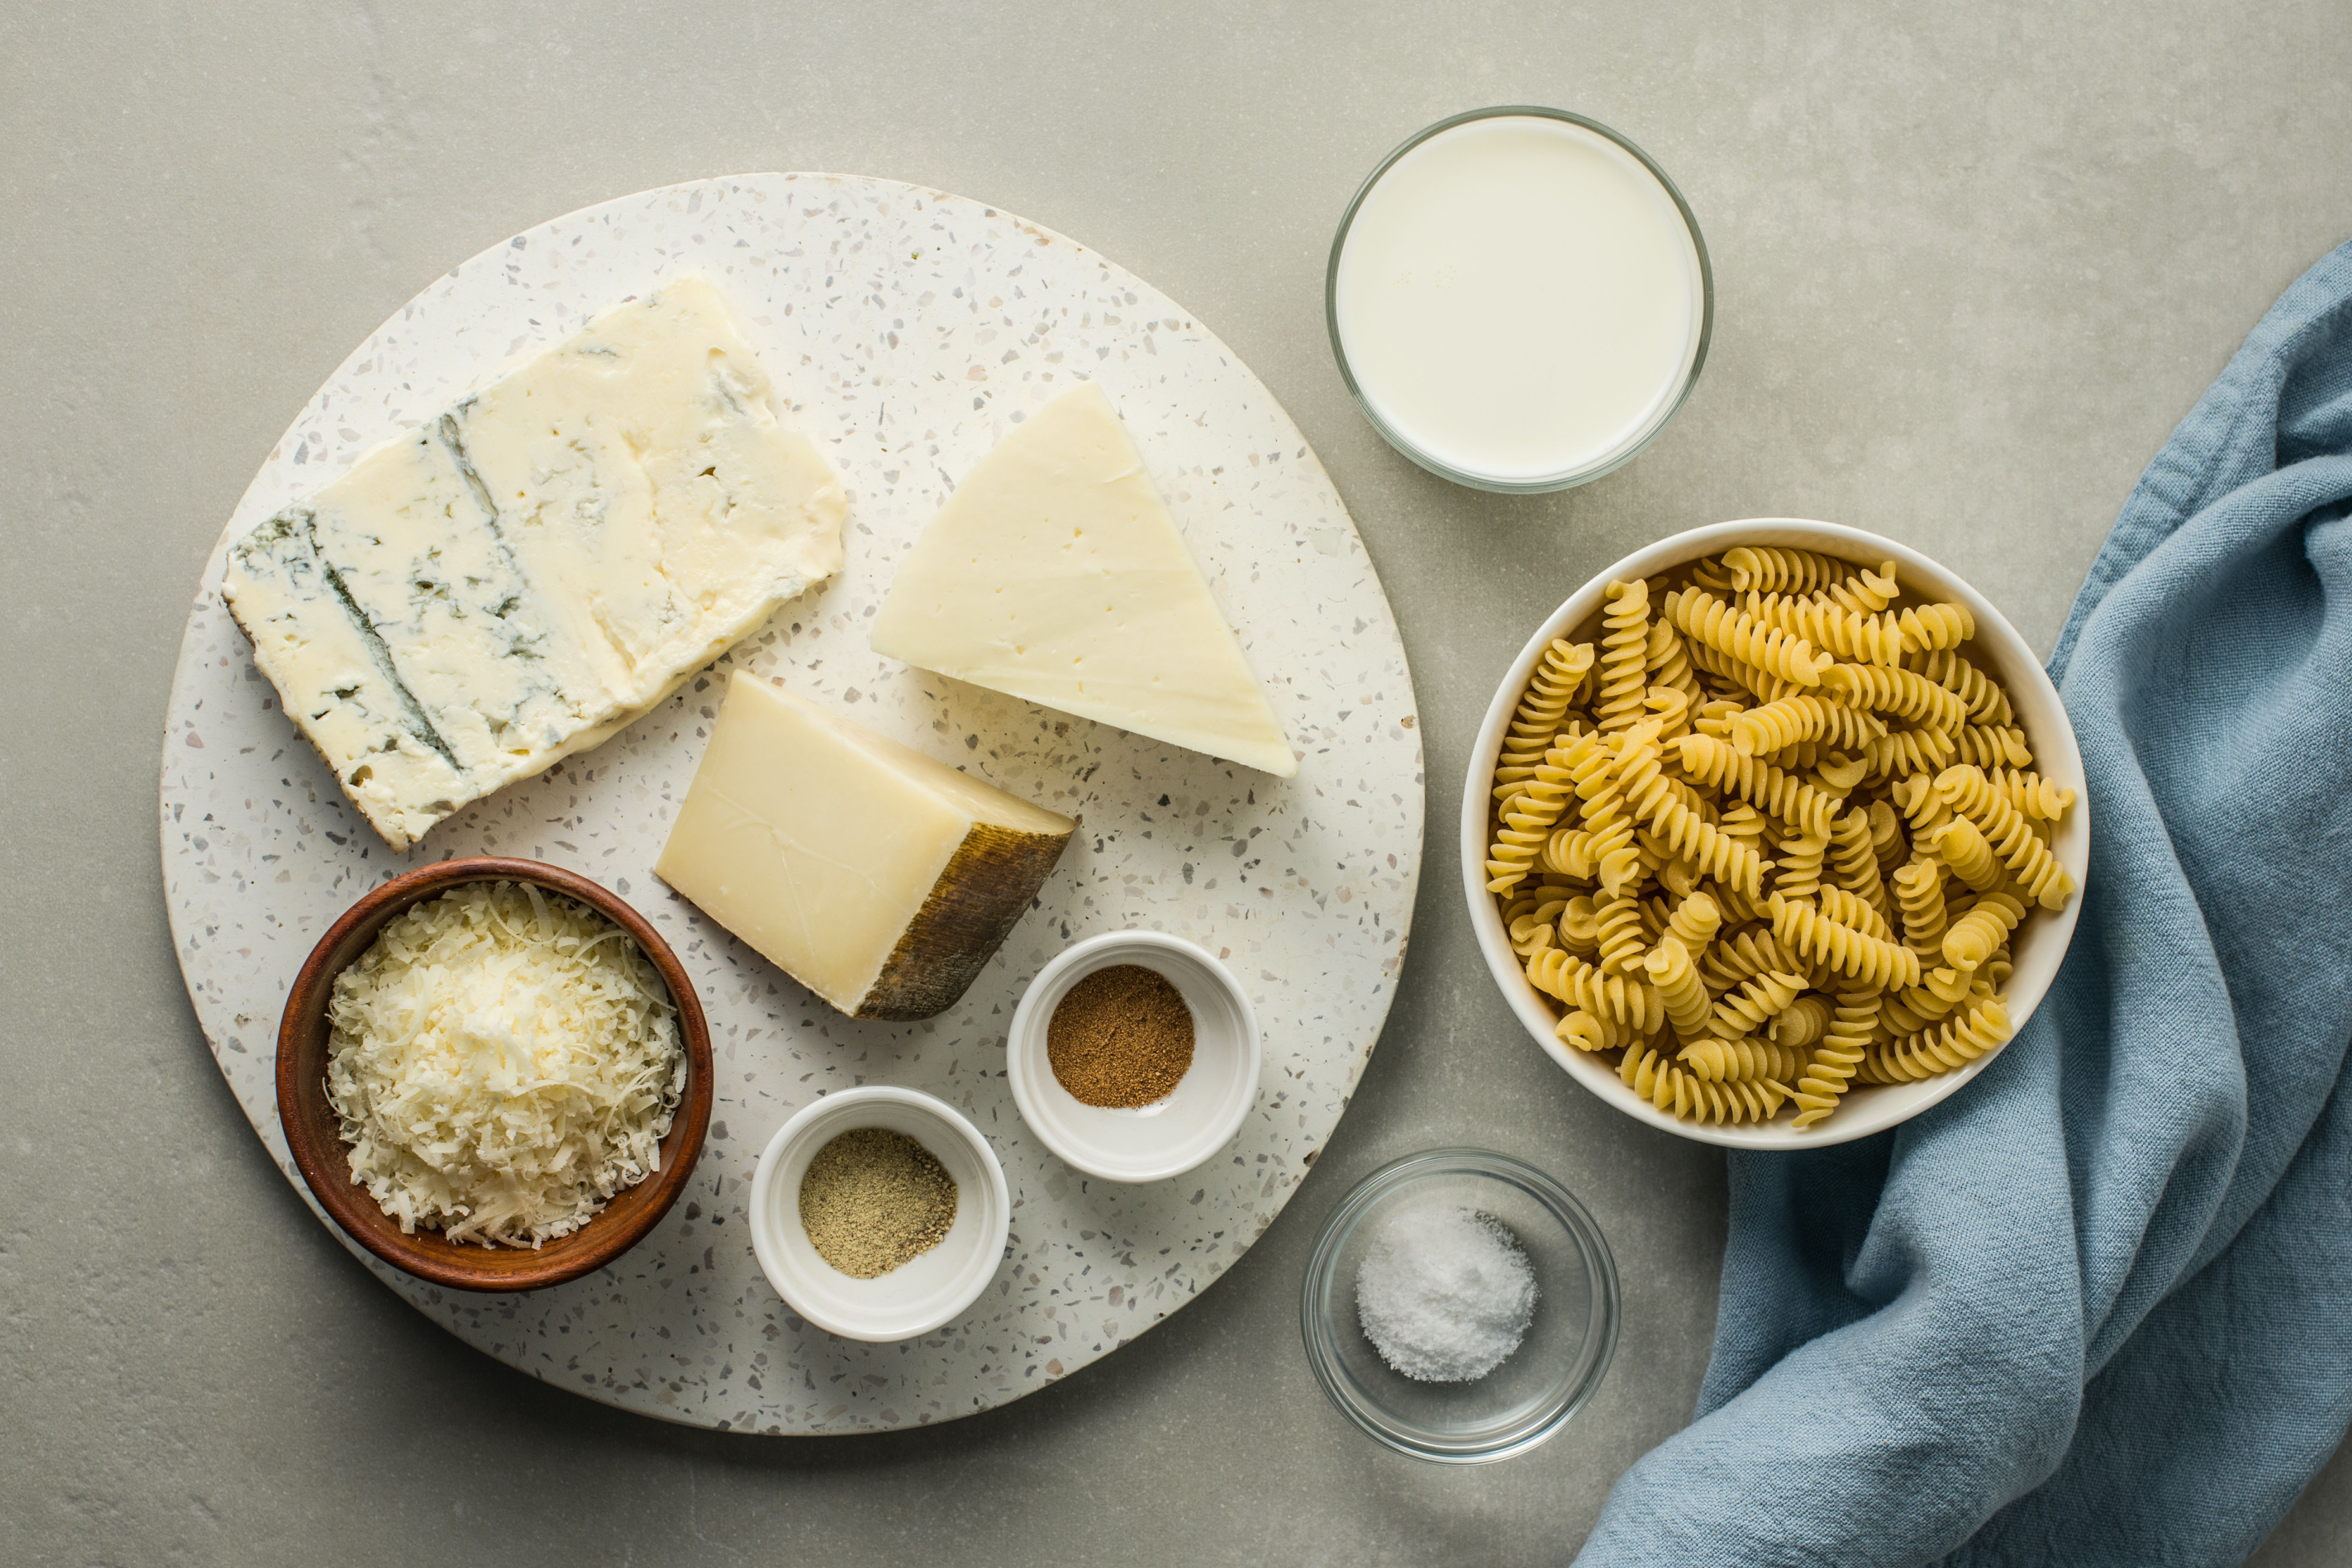 Four-Cheese Pasta Sauce ingredients